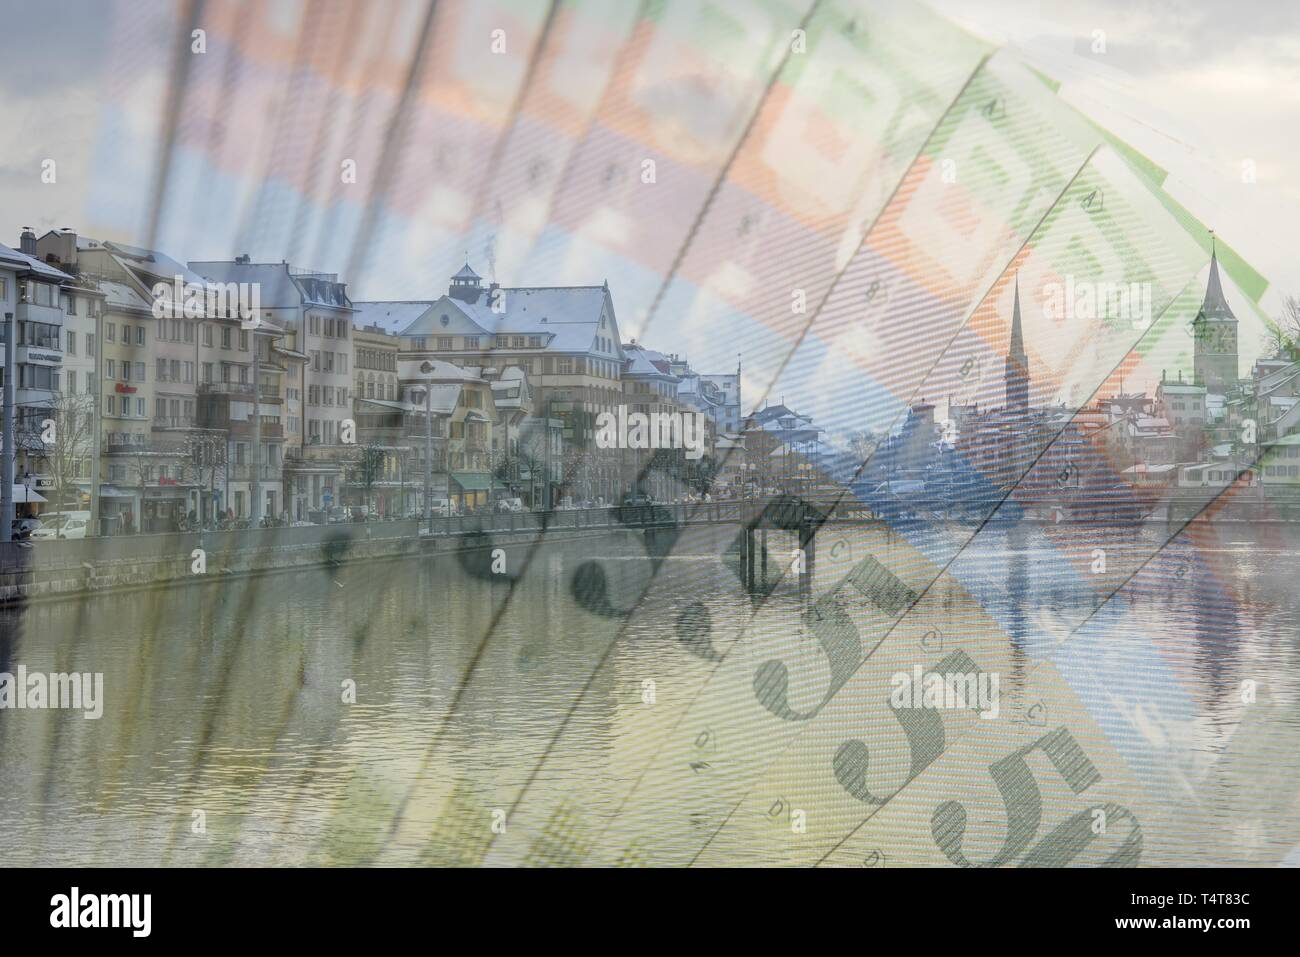 Zurich with the river and Swiss franc banknotes, Symbol photo - Stock Image